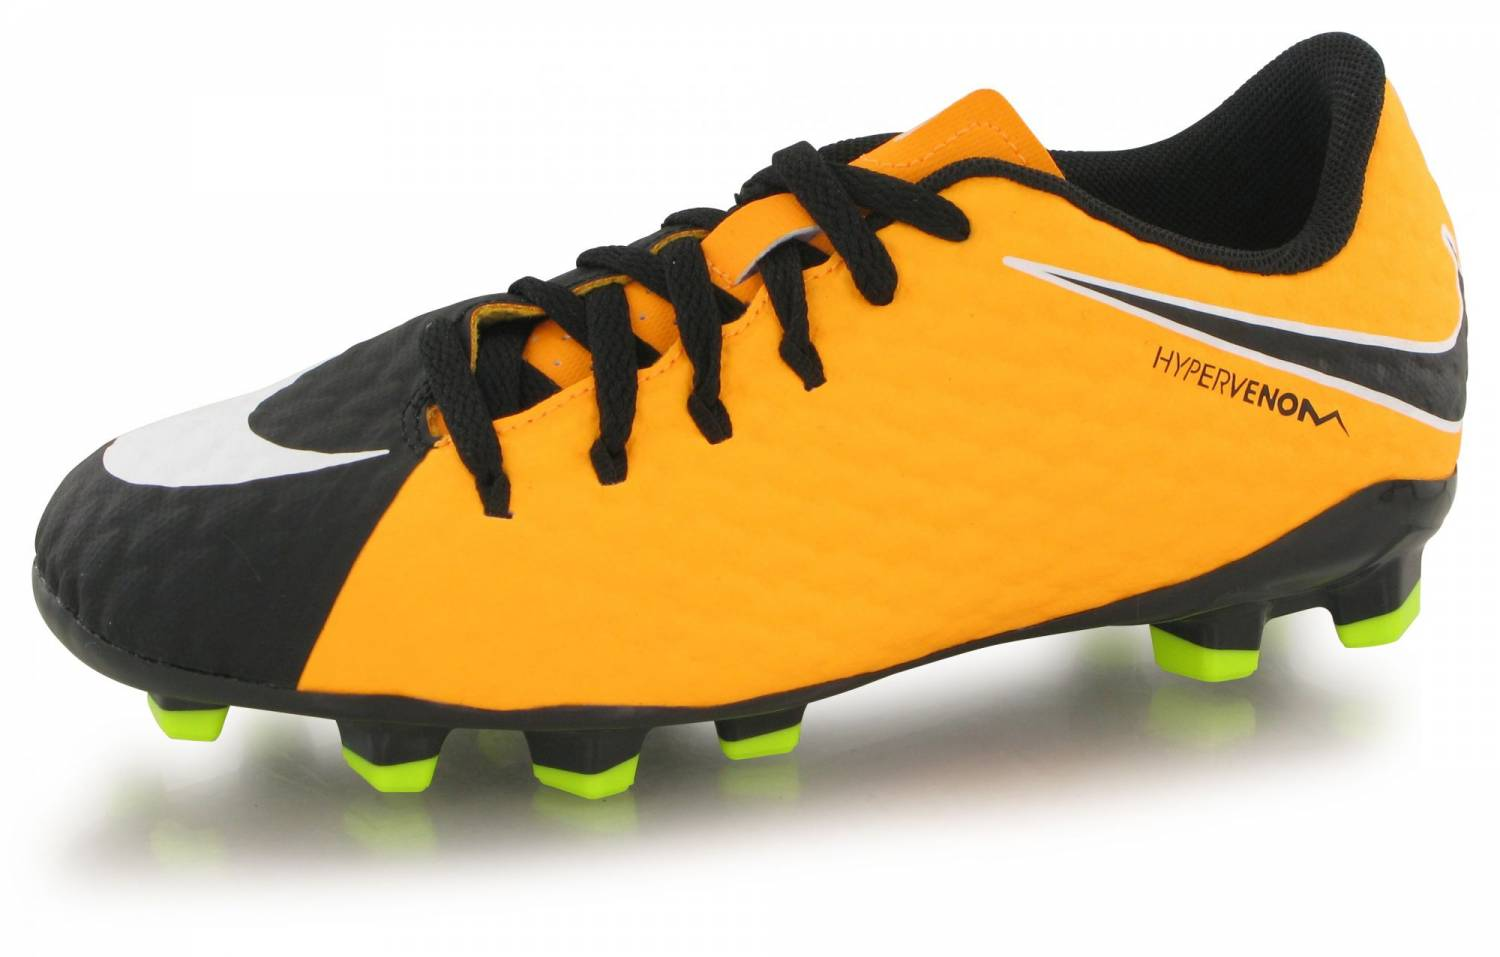 Nike Hypervenom Phelon Iii Fg Junior Orange Laser Noir